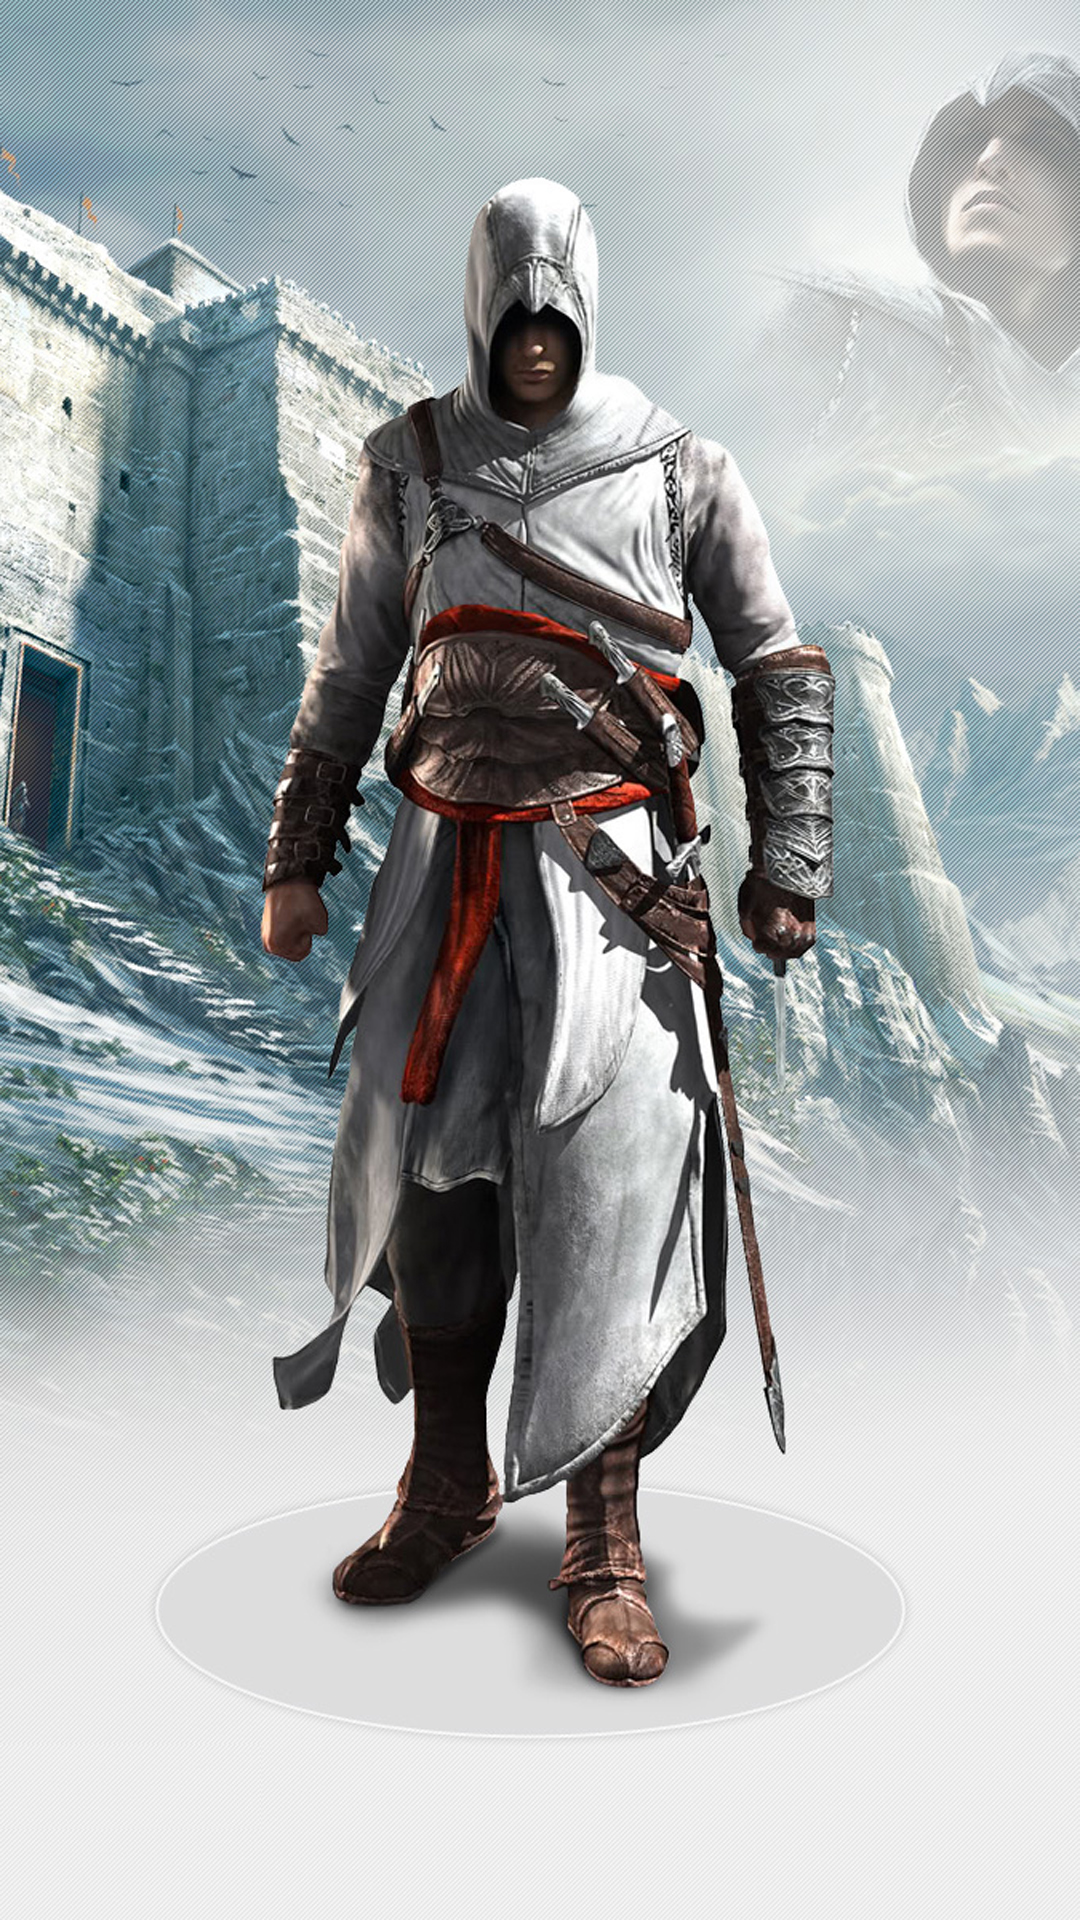 Assassins Creed Android Wallpaper Cosplay Assassins Creed